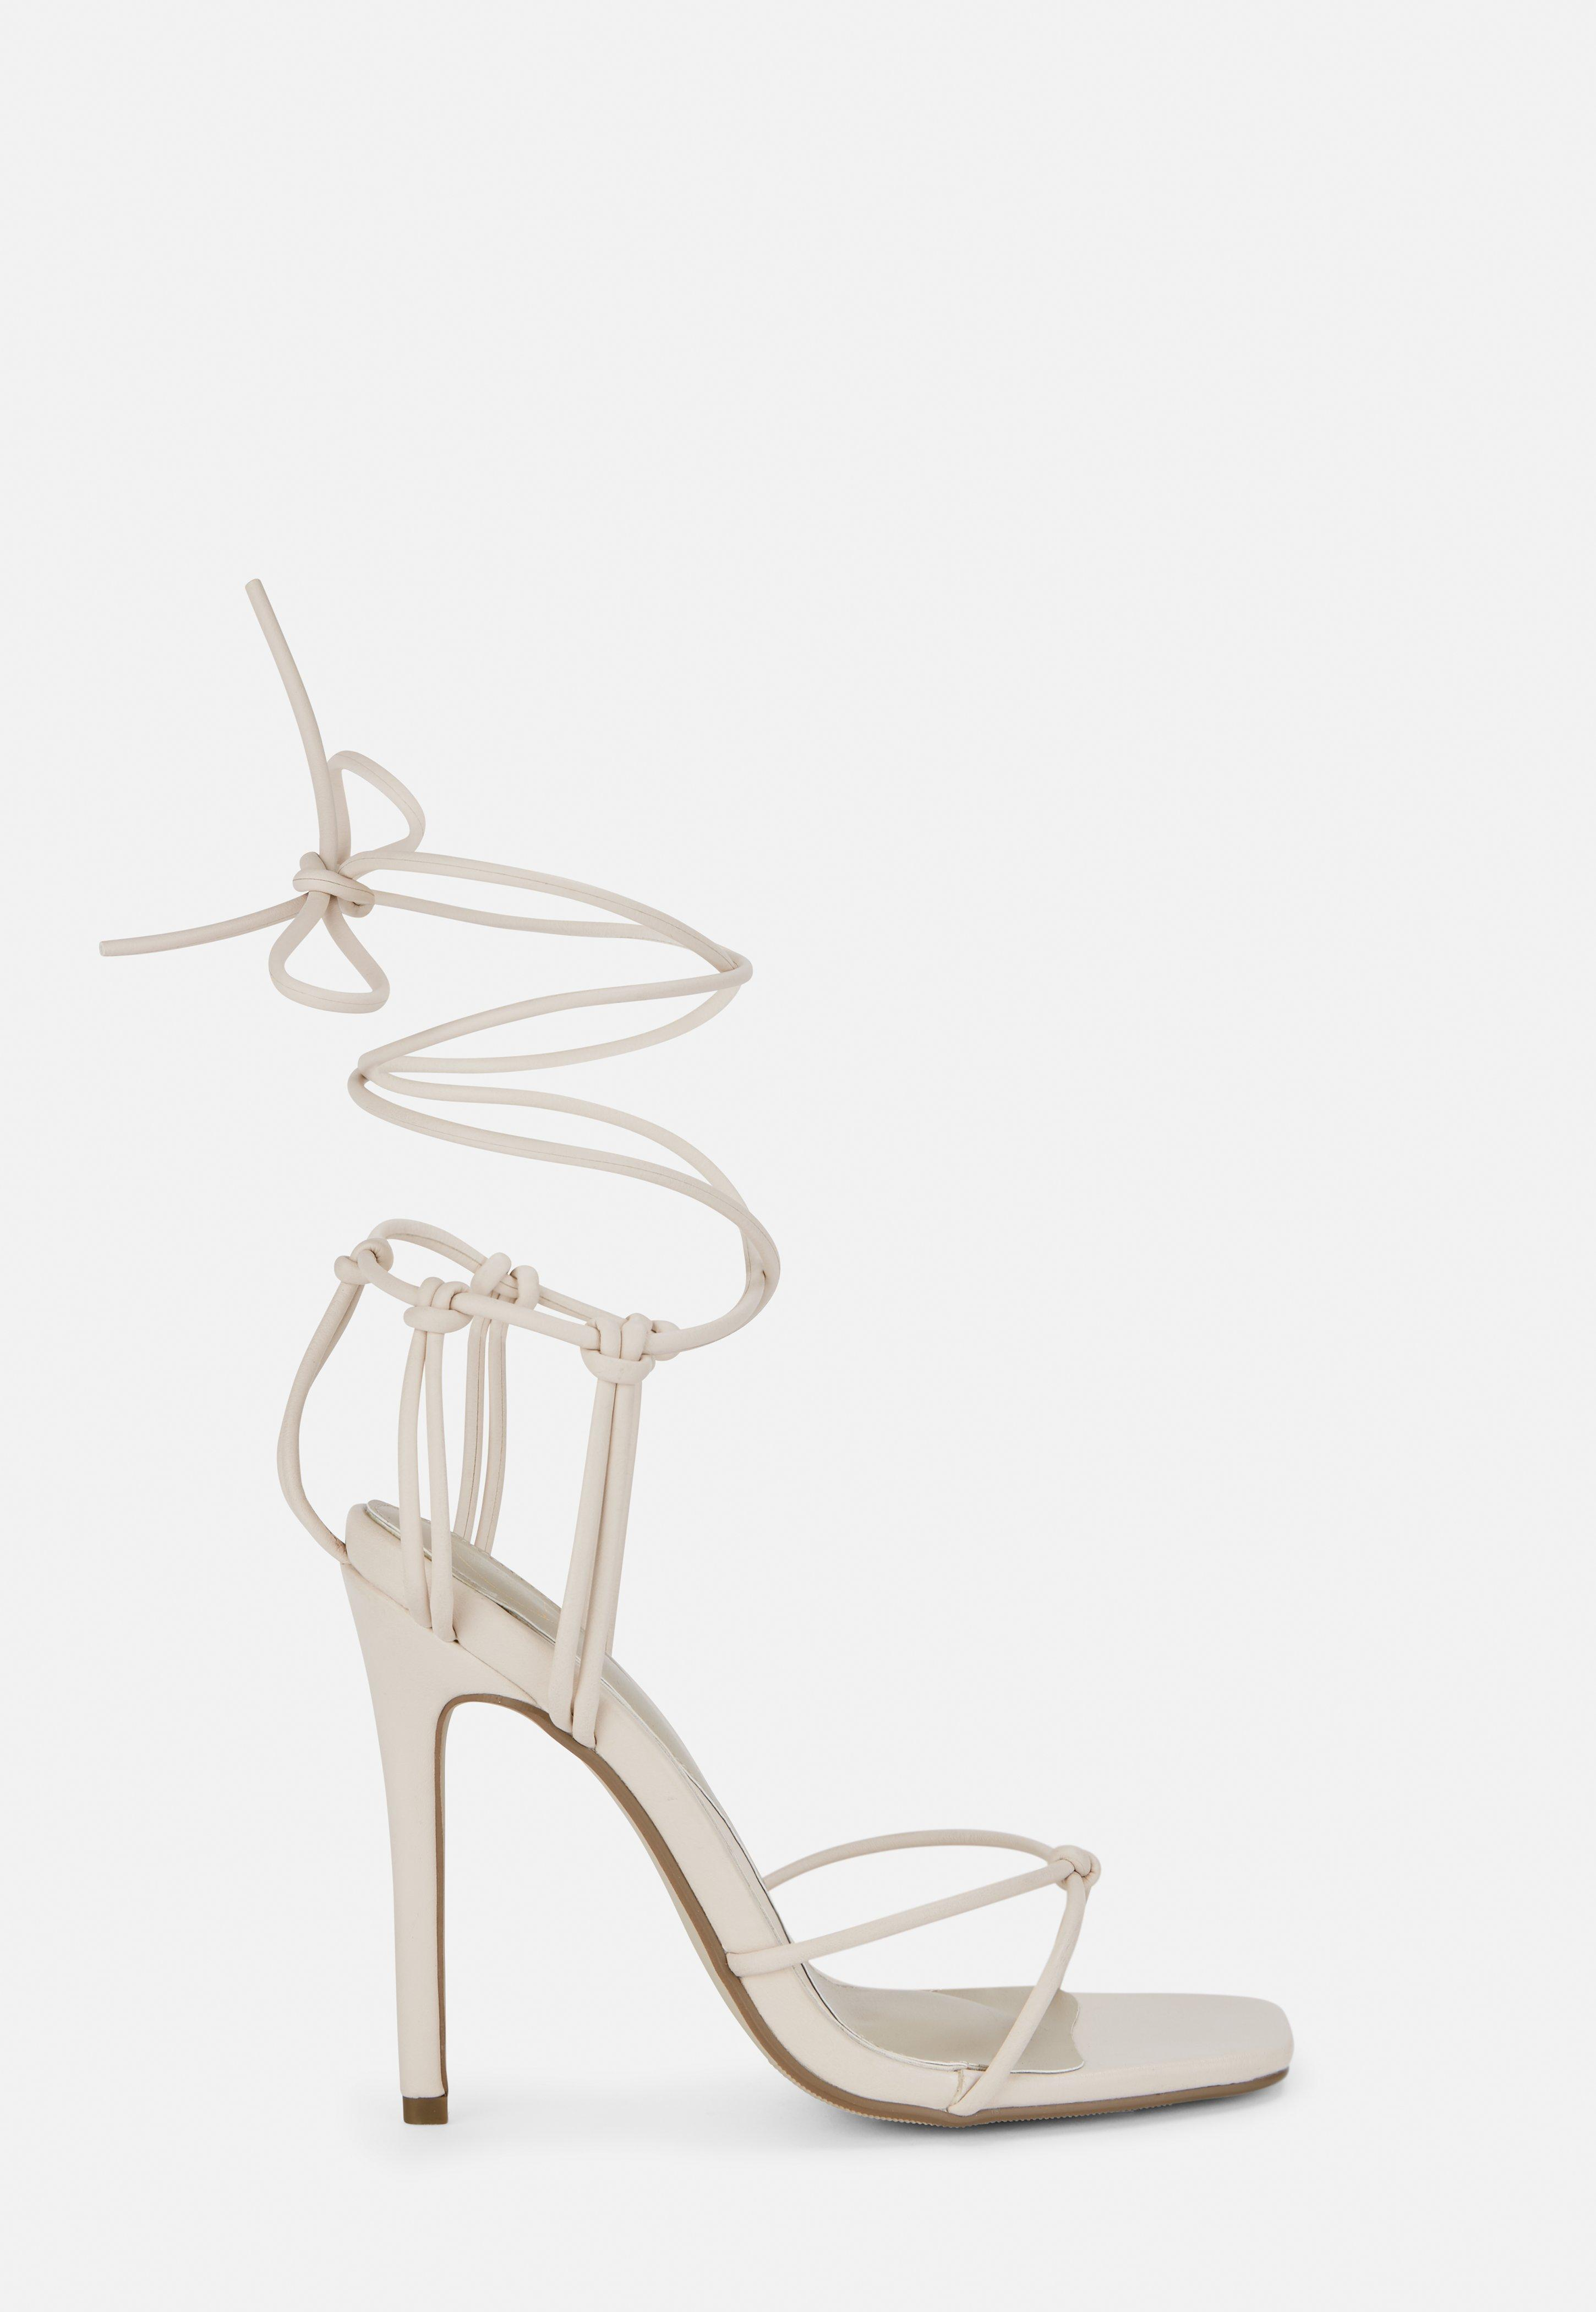 Nude Square Toe Strappy Knot Heels